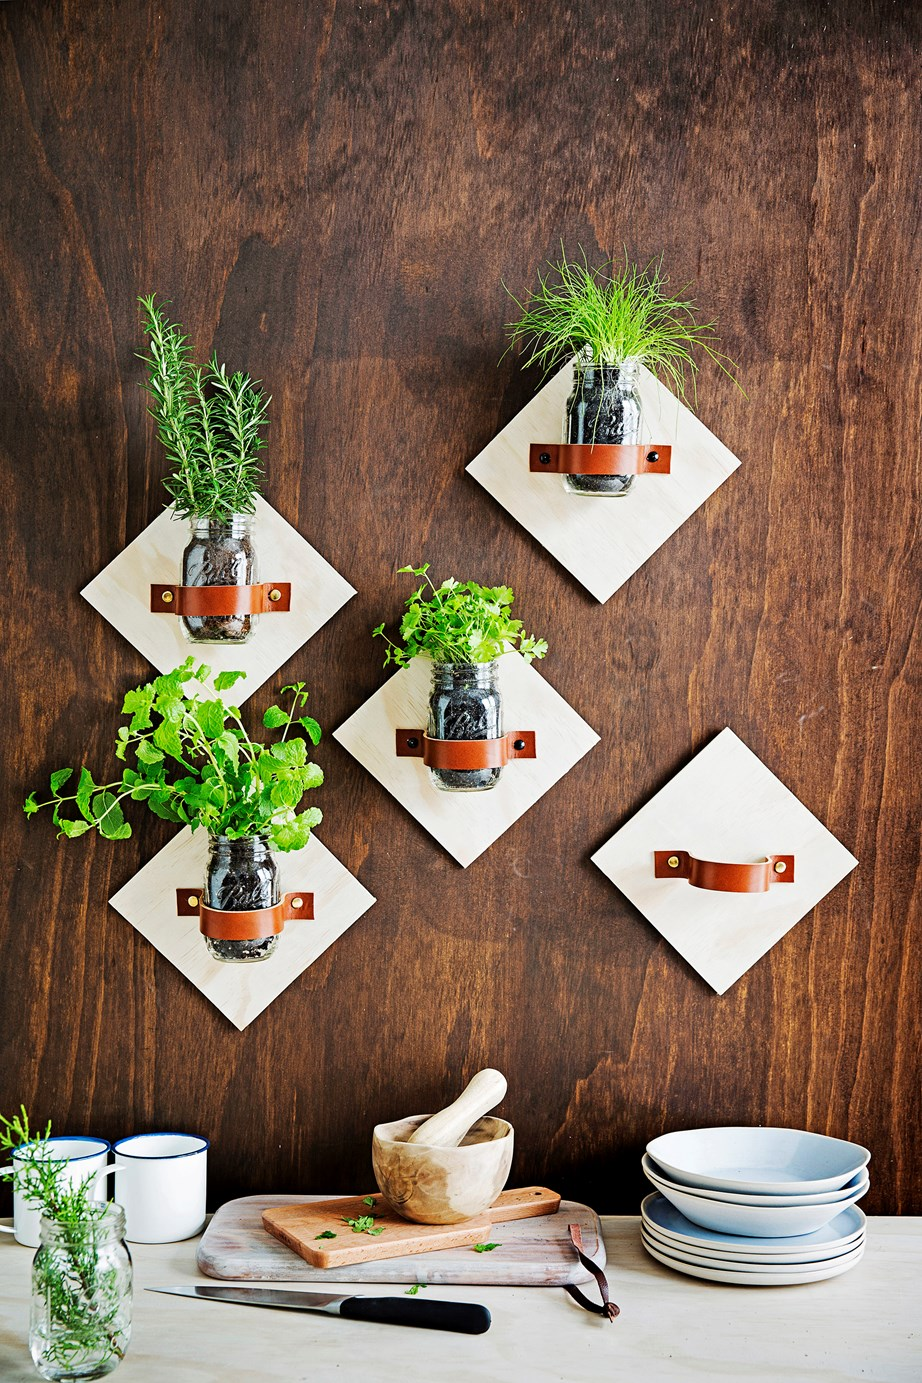 """**Indoor herb garden:** The greatest myth in gardening is that you need a backyard when in fact, the most productive [herb gardens](https://www.homestolove.com.au/10-easy-to-grow-herb-plants-3214